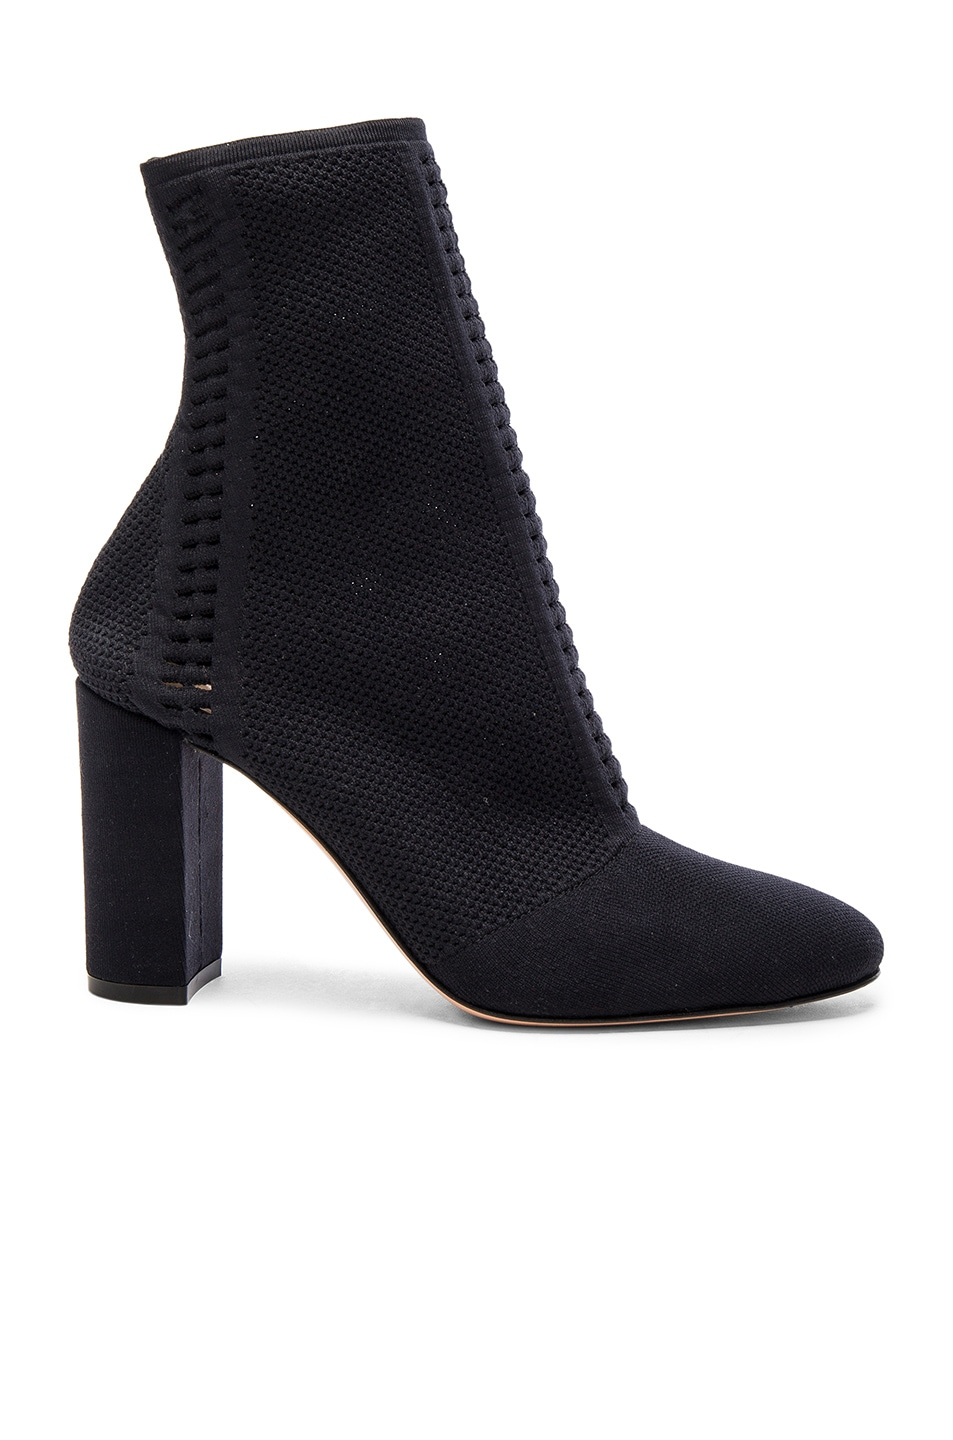 Image 1 of Gianvito Rossi Knit Vires Block Heel Booties in Black